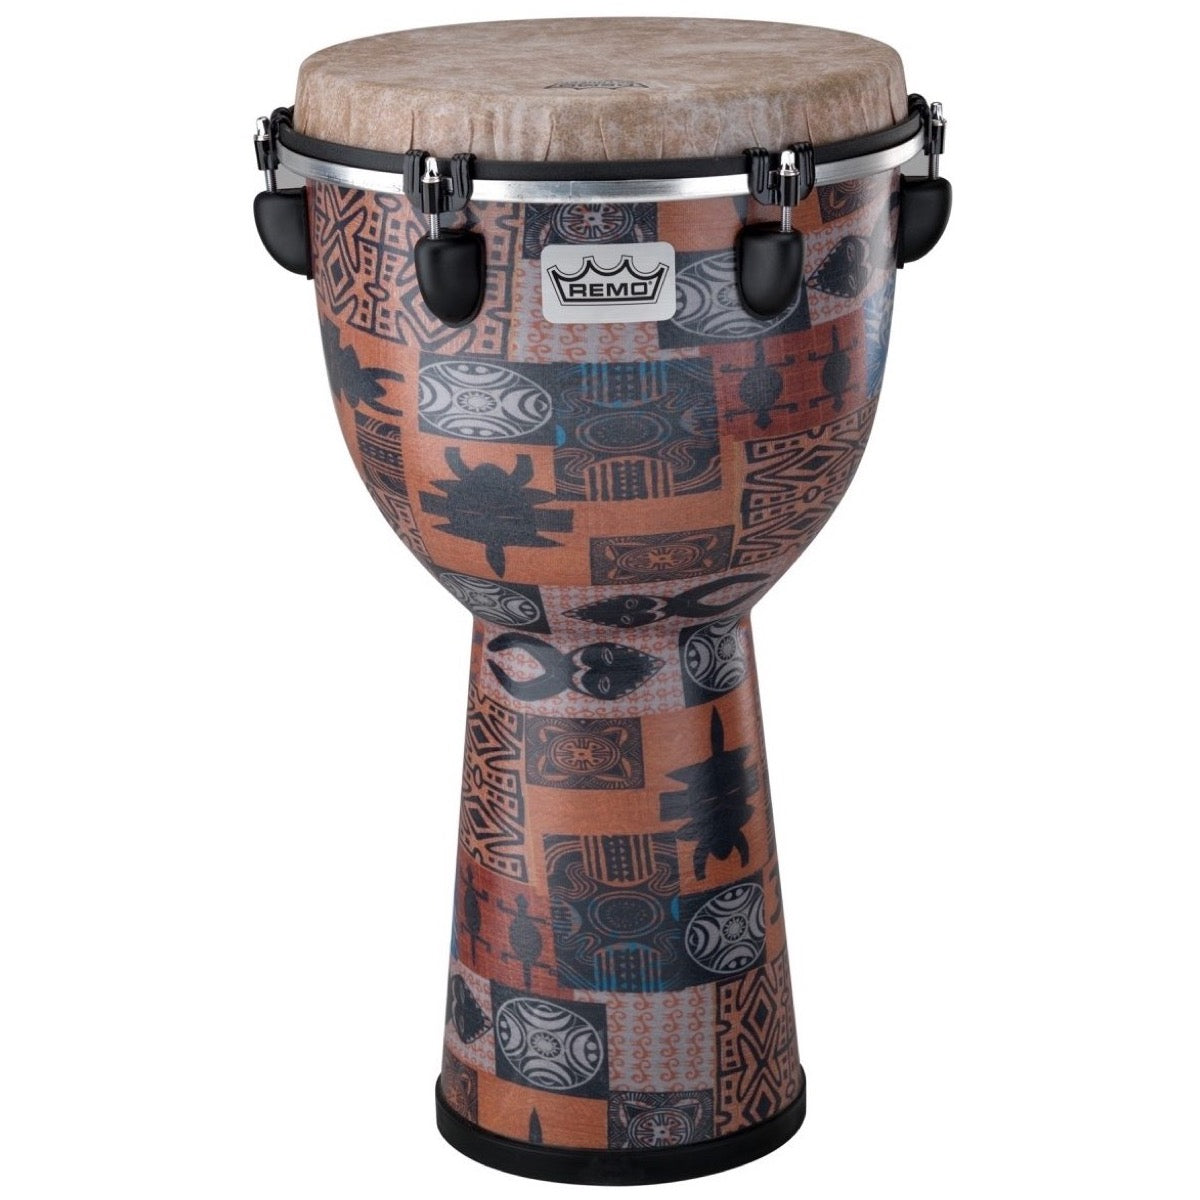 Remo Apex Djembe Drum, Orange, 12 Inch